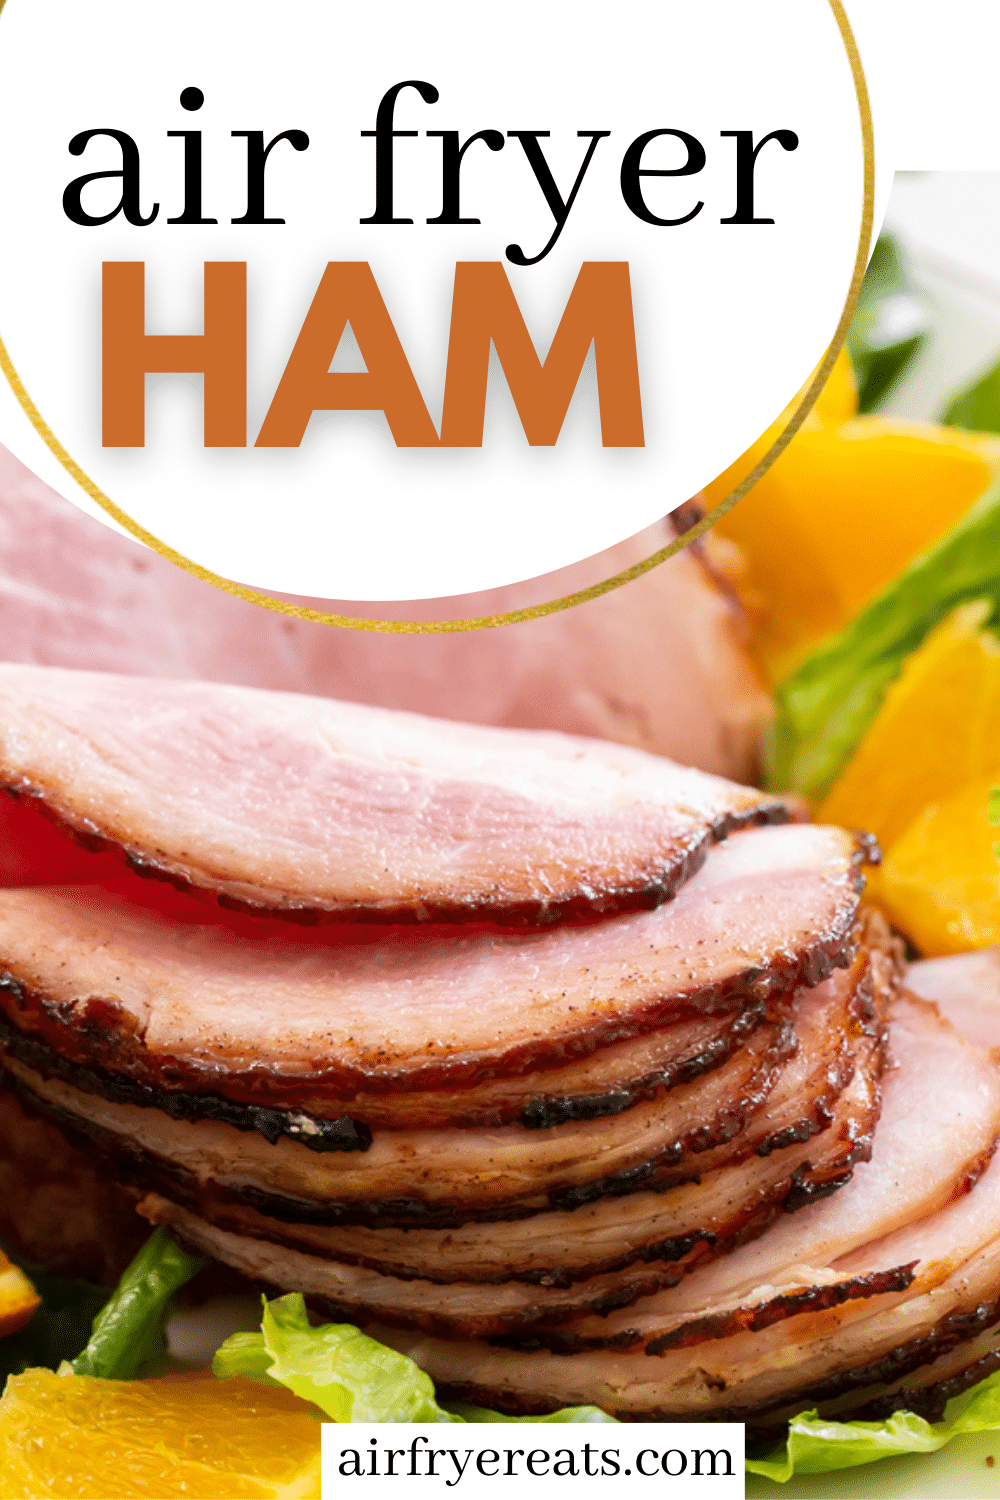 """image of a sliced harm with a text overlay that says """"air fryer ham"""""""